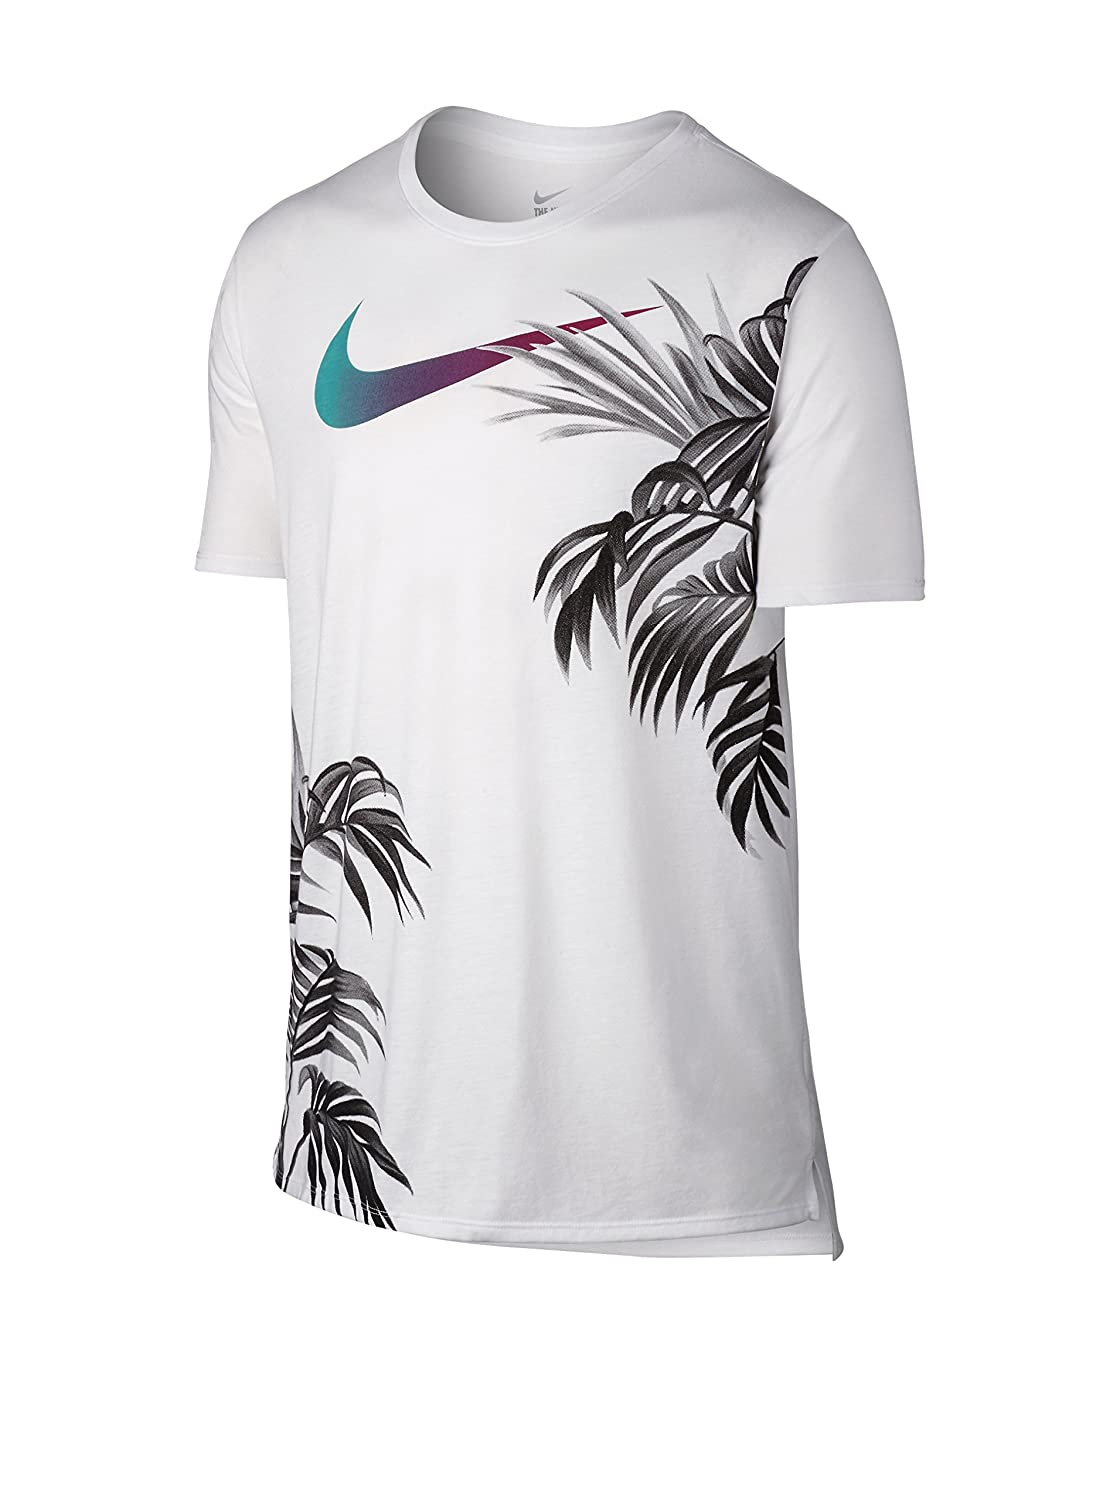 Amazon.com: Nike Men's Shoes of Paradise White T-Shirt XL: Sports & Outdoors